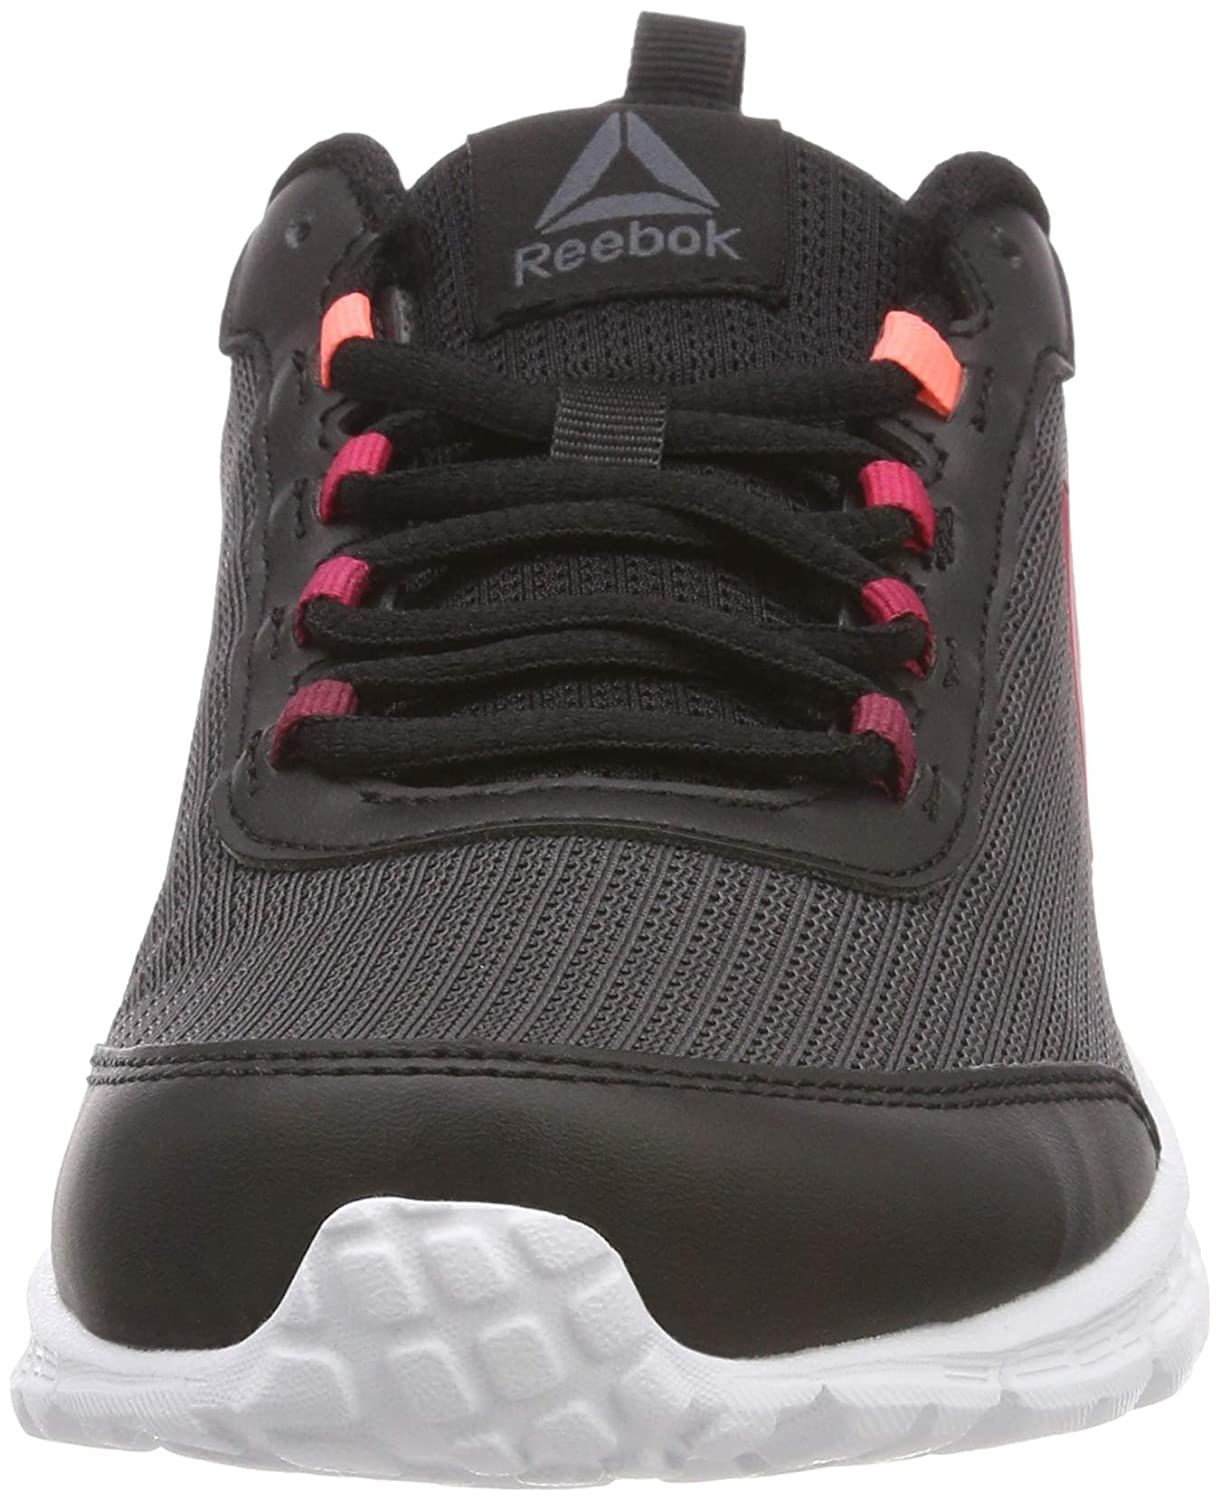 bc2bab311f585 Reebok Women s Speedlux 3.0 Black Ash Gry Wht Running Shoes-7 UK India  (40.5 EU)(9.5 US) (CN3475)  Amazon.in  Shoes   Handbags